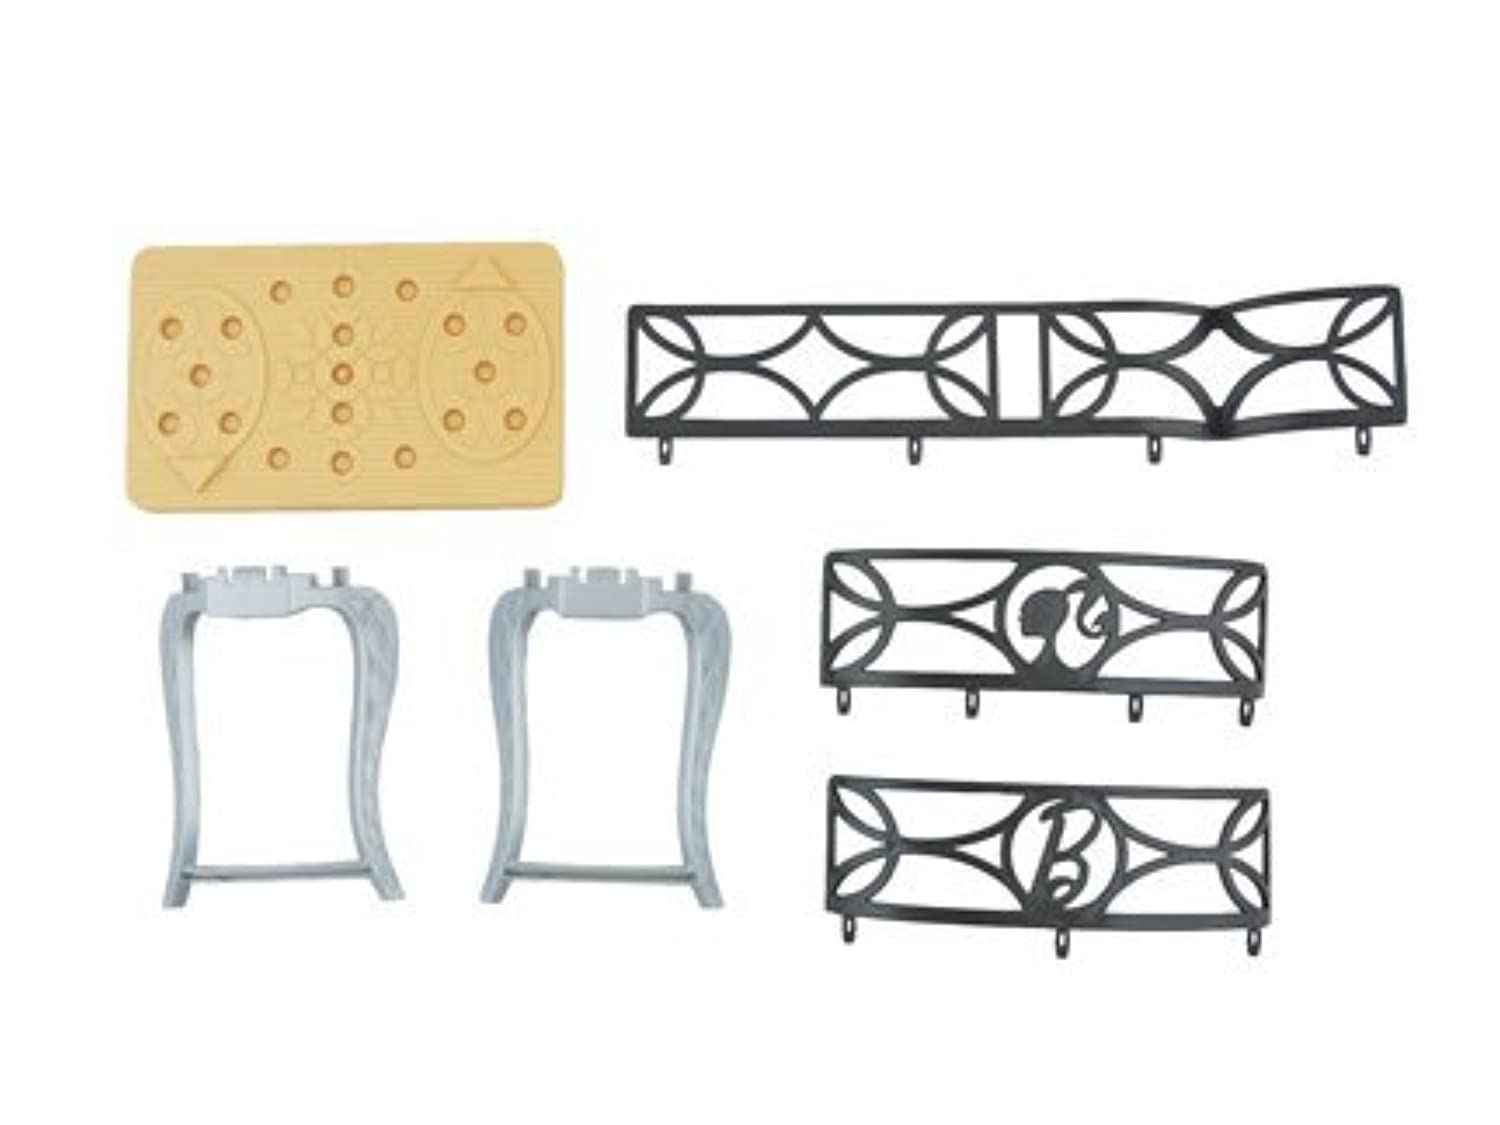 Barbie 3 Story Dream Townhouse - Replacement Table and Railings